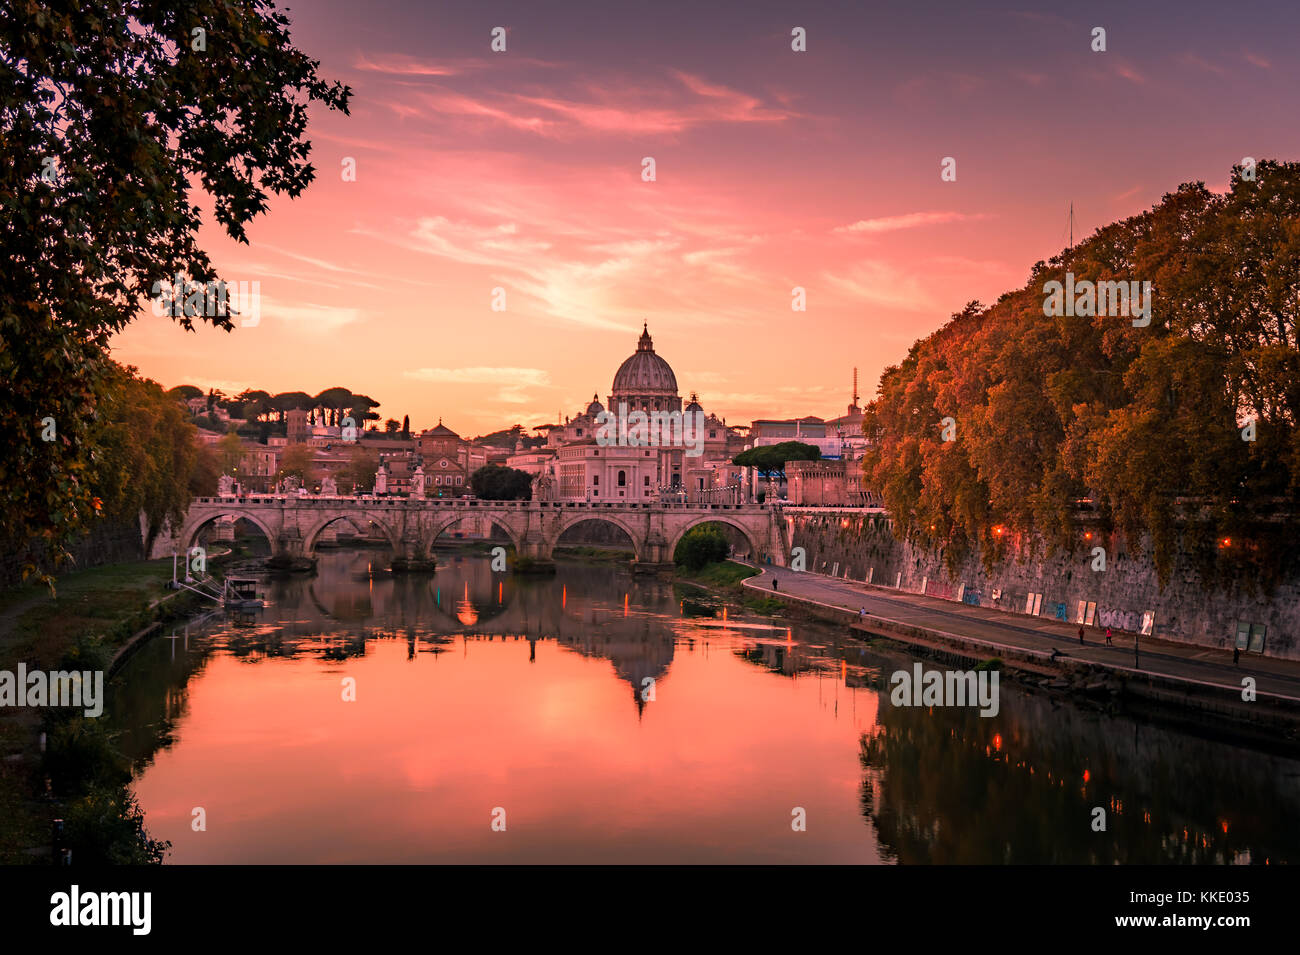 Beautiful view over St. Peter's Basilica in Vatican from Rome, Italy during the sunset in Autumn - Stock Image